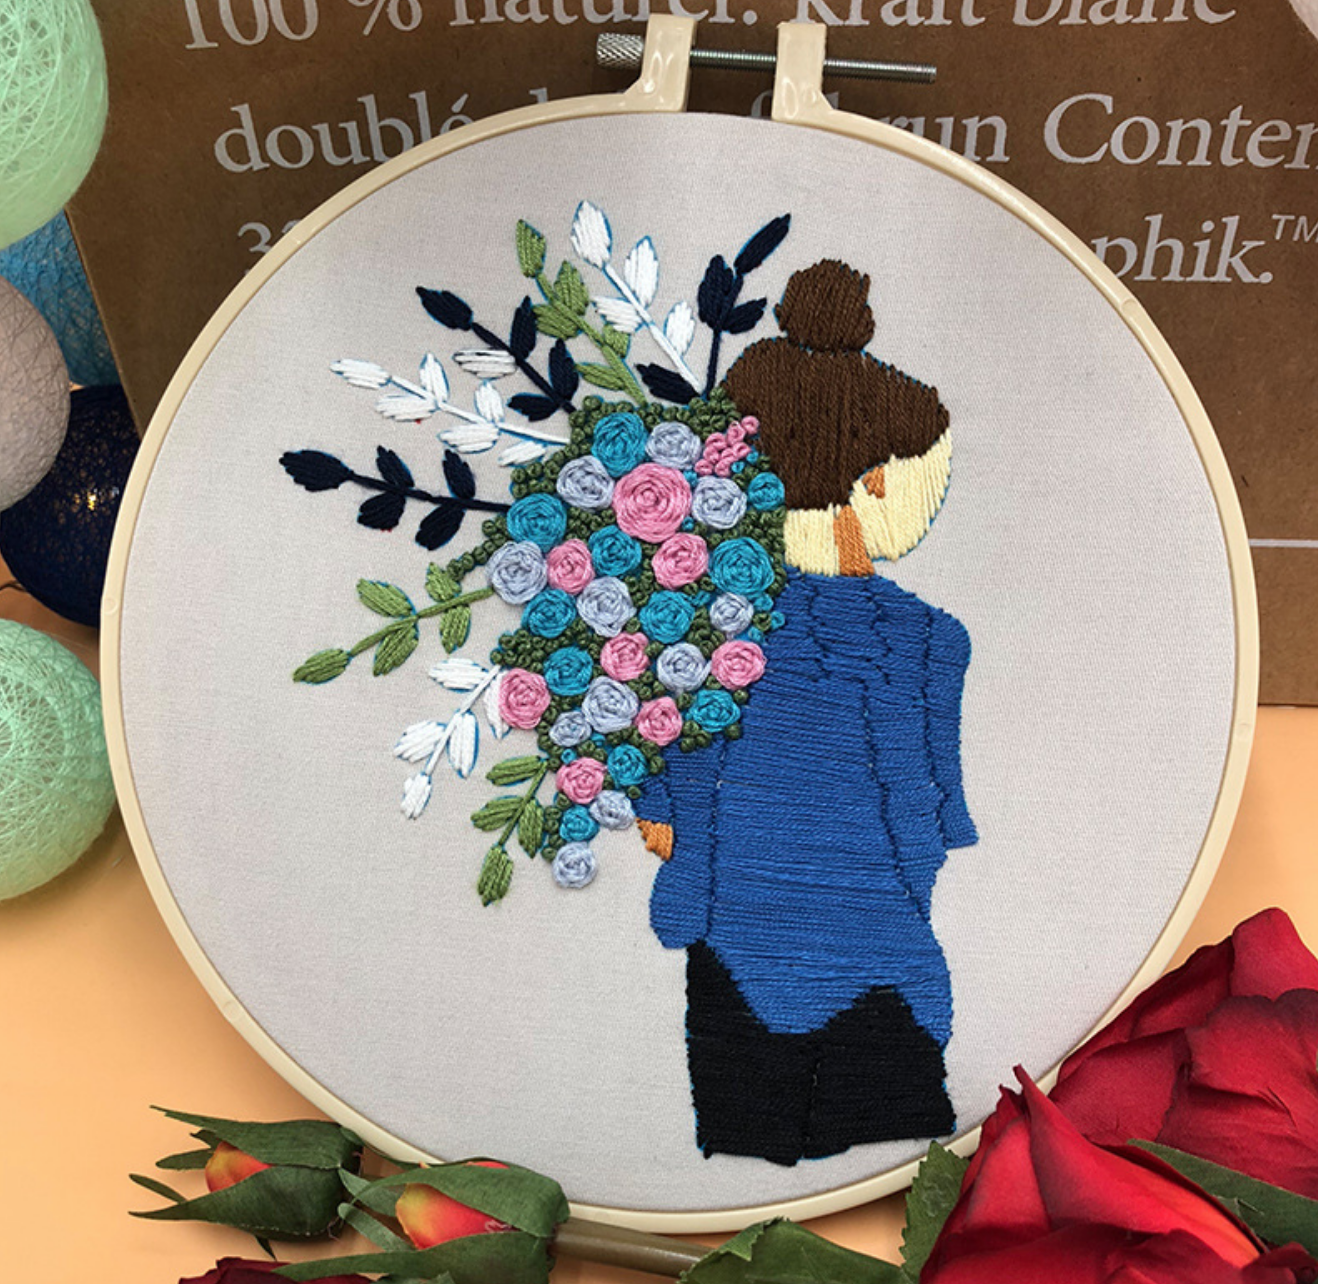 Blue Shirt Brunette wth Pink and Blue Roses Embroidery